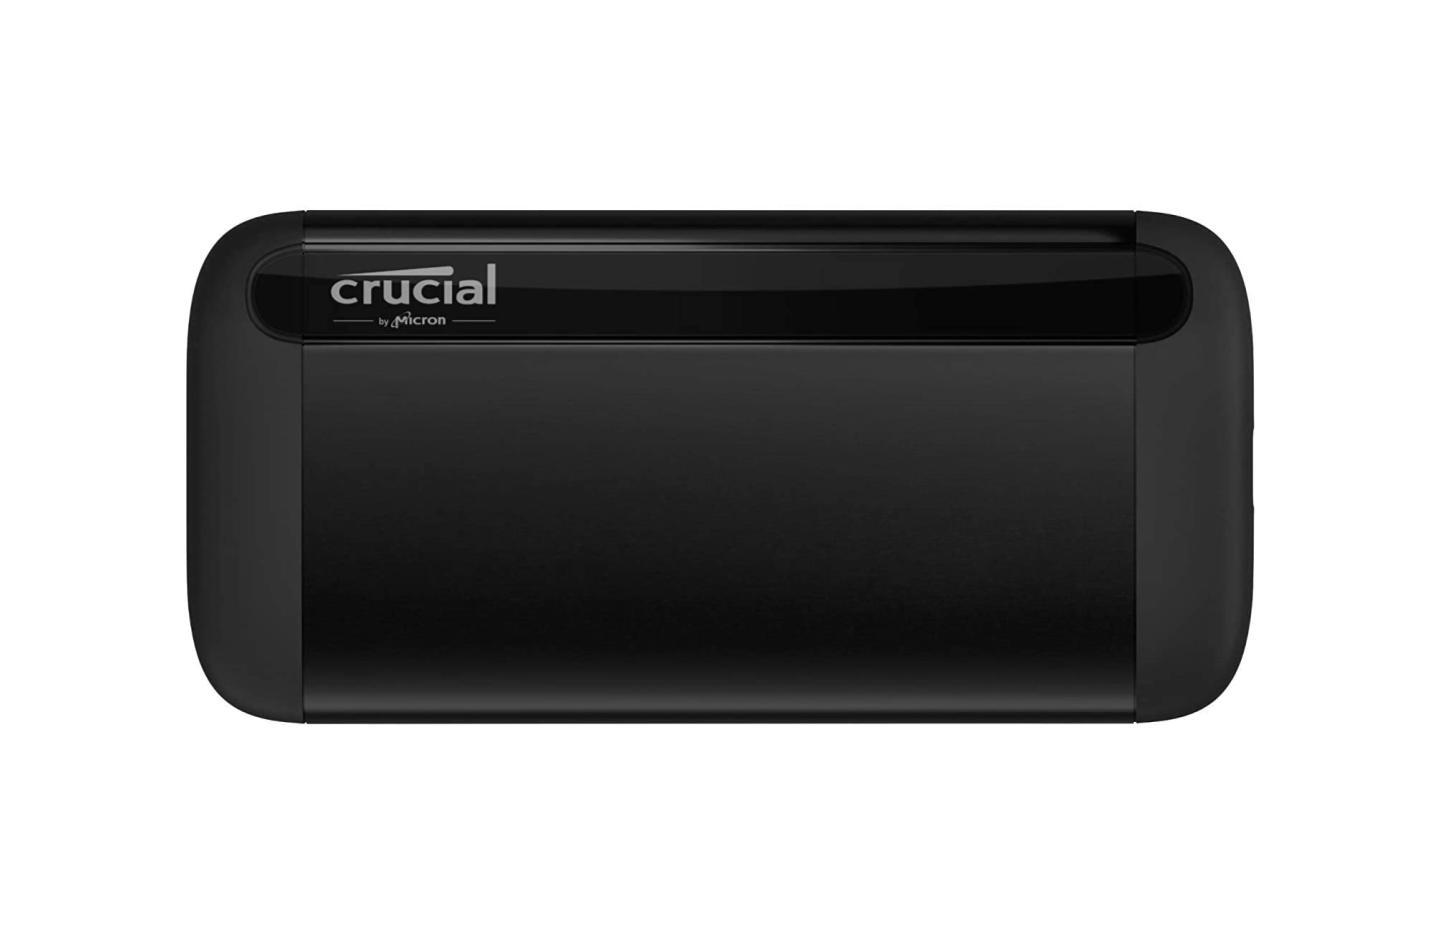 Crucial X8 : ce SSD portable 1 To ultra rapide (1 050 Mo/s) est à 129 €